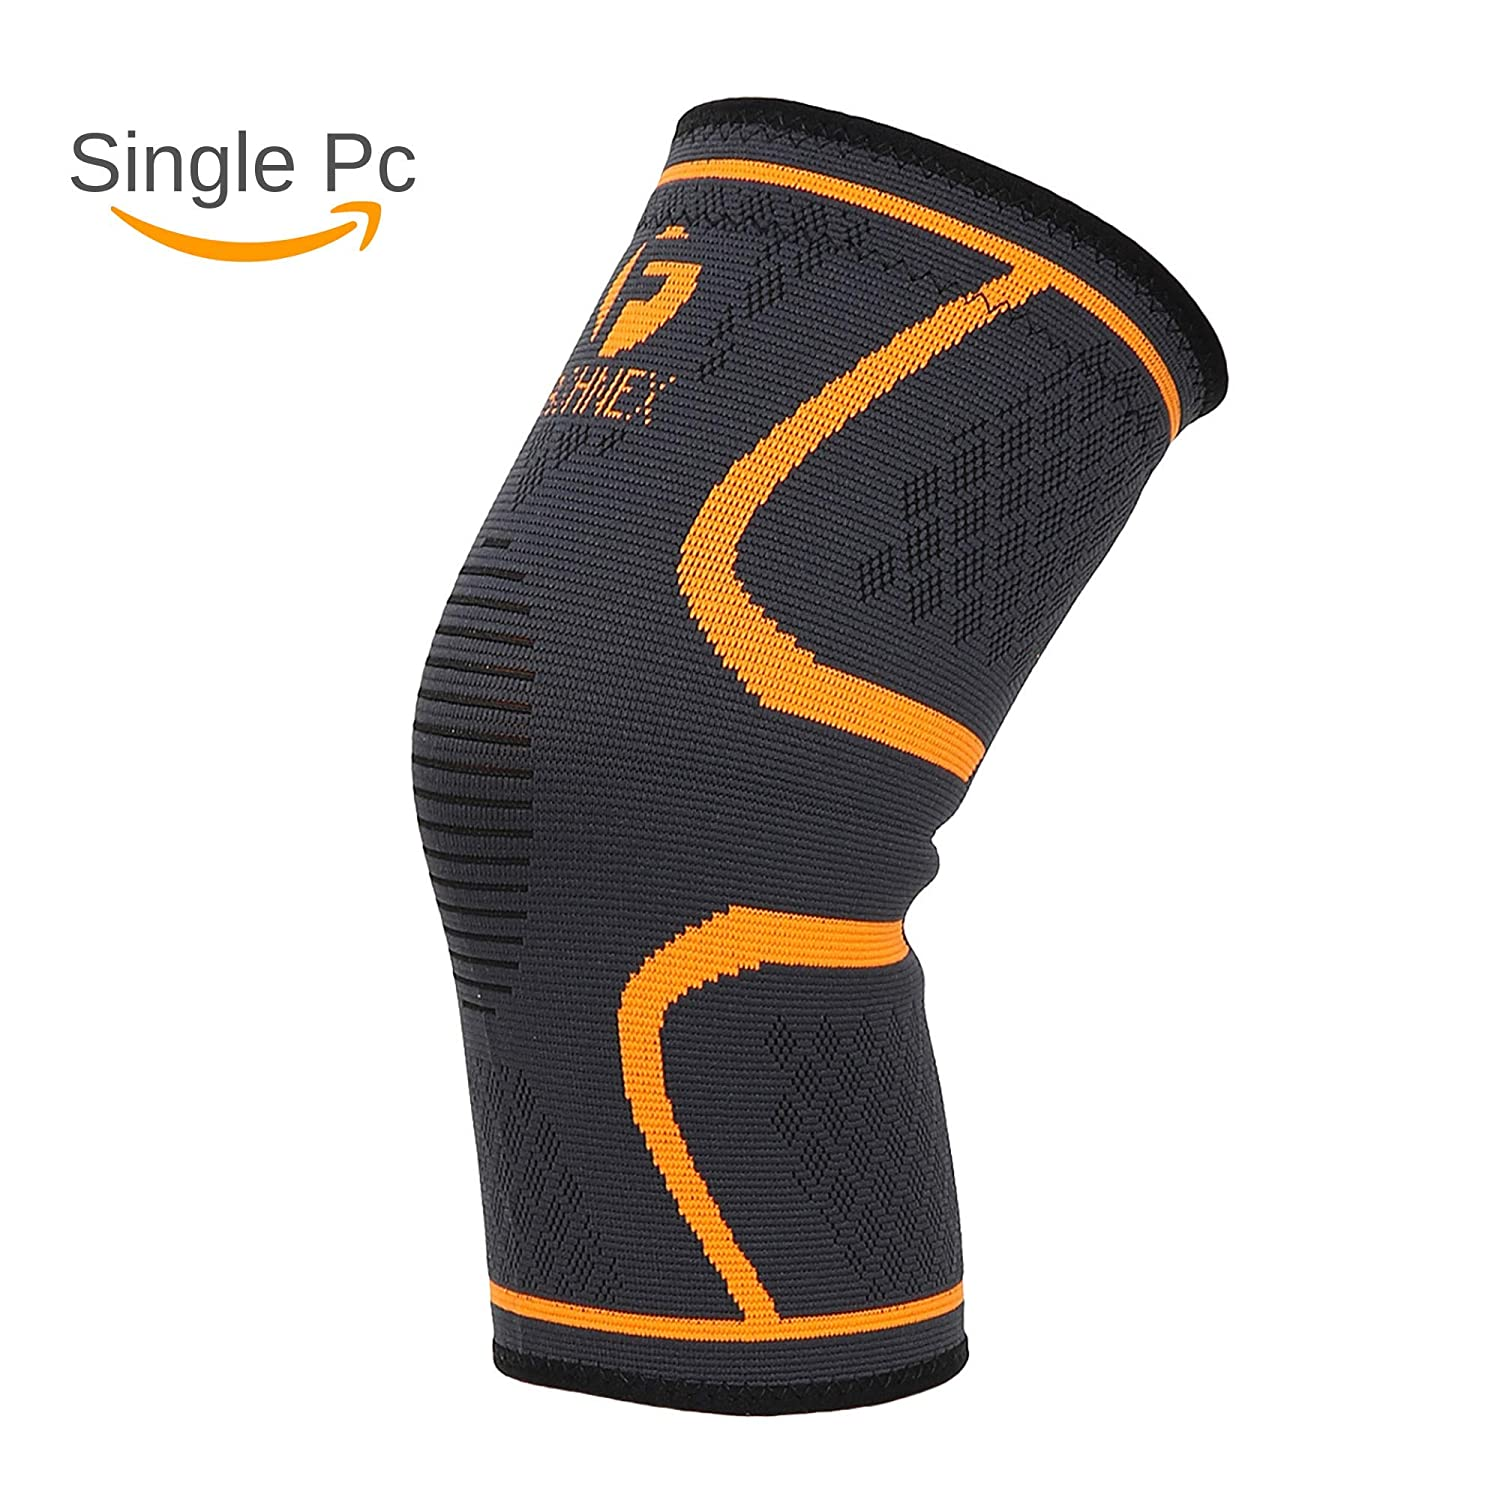 71543e092492 Buy Fashnex Support Sleeve for knee cap pain, running, gym, sports for men  & women (Single Pc), Orange, Medium Size Online at Low Prices in India -  Amazon. ...